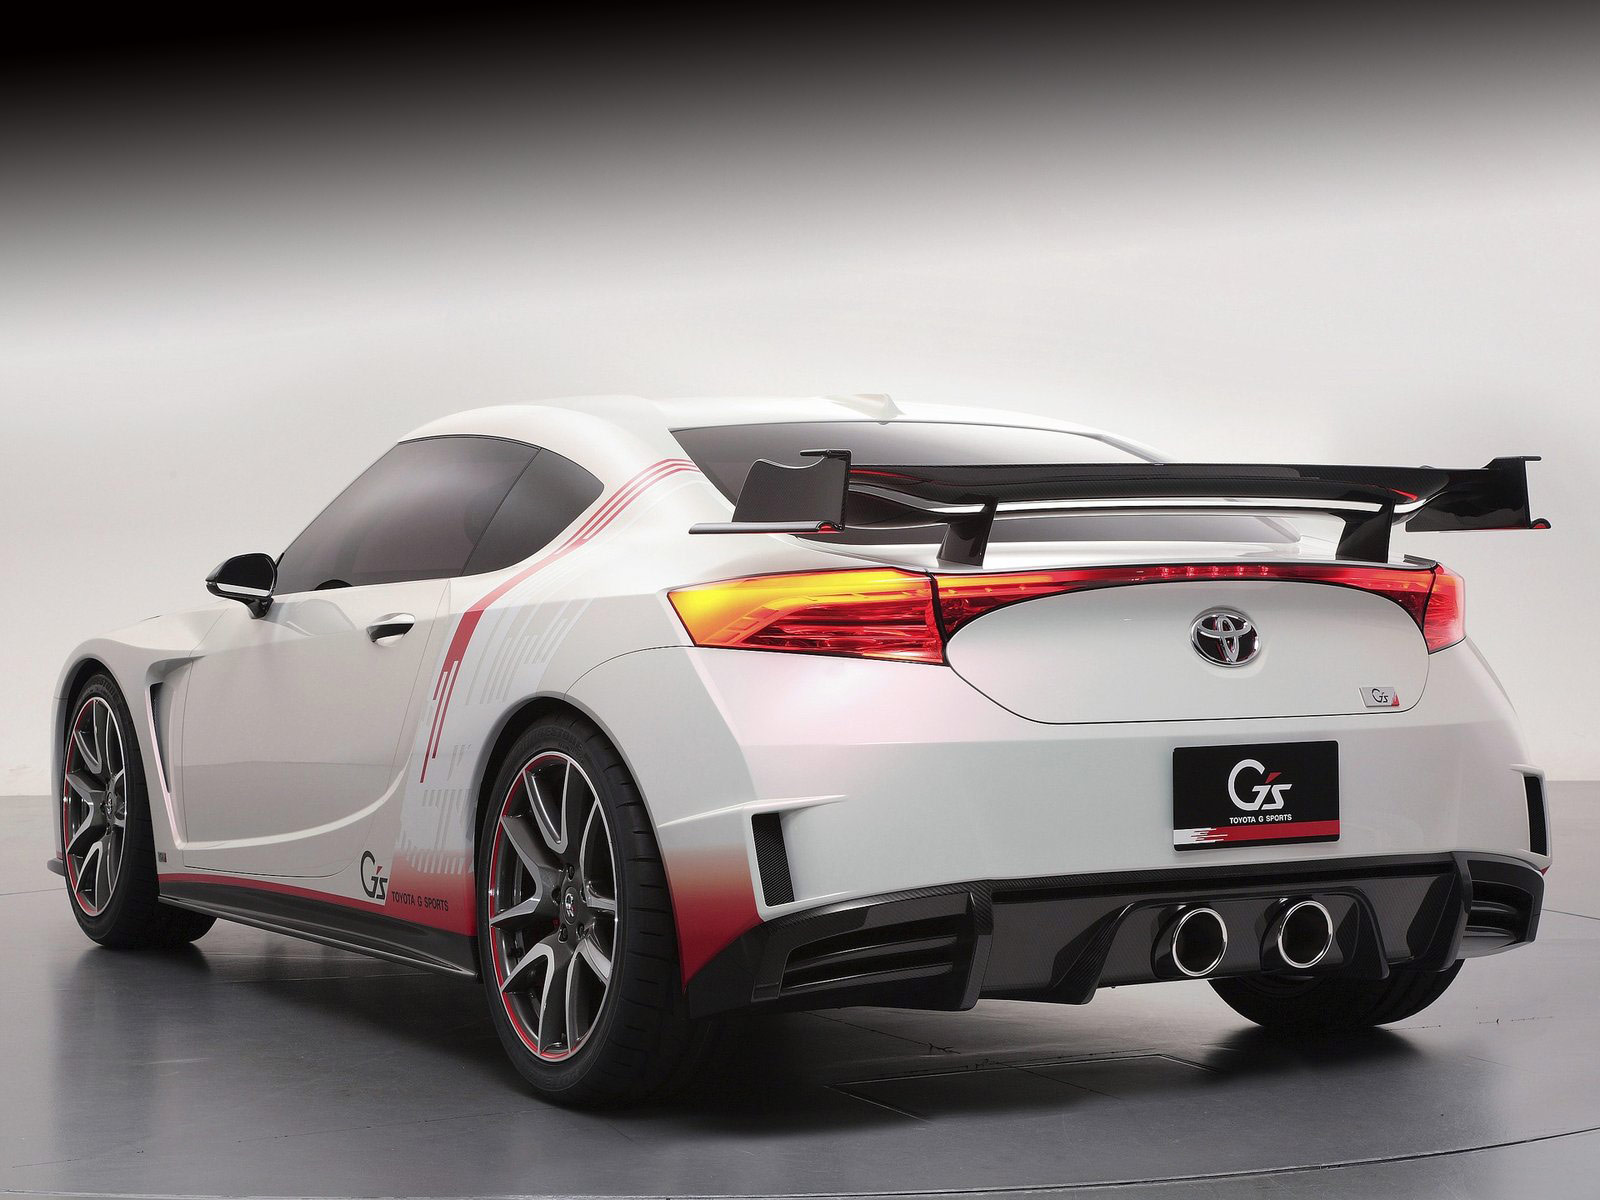 Toyota Ft 86 >> POWER VEHICLE. Modified Car.: TOYOTA FT-86G Sports Concept (2010)